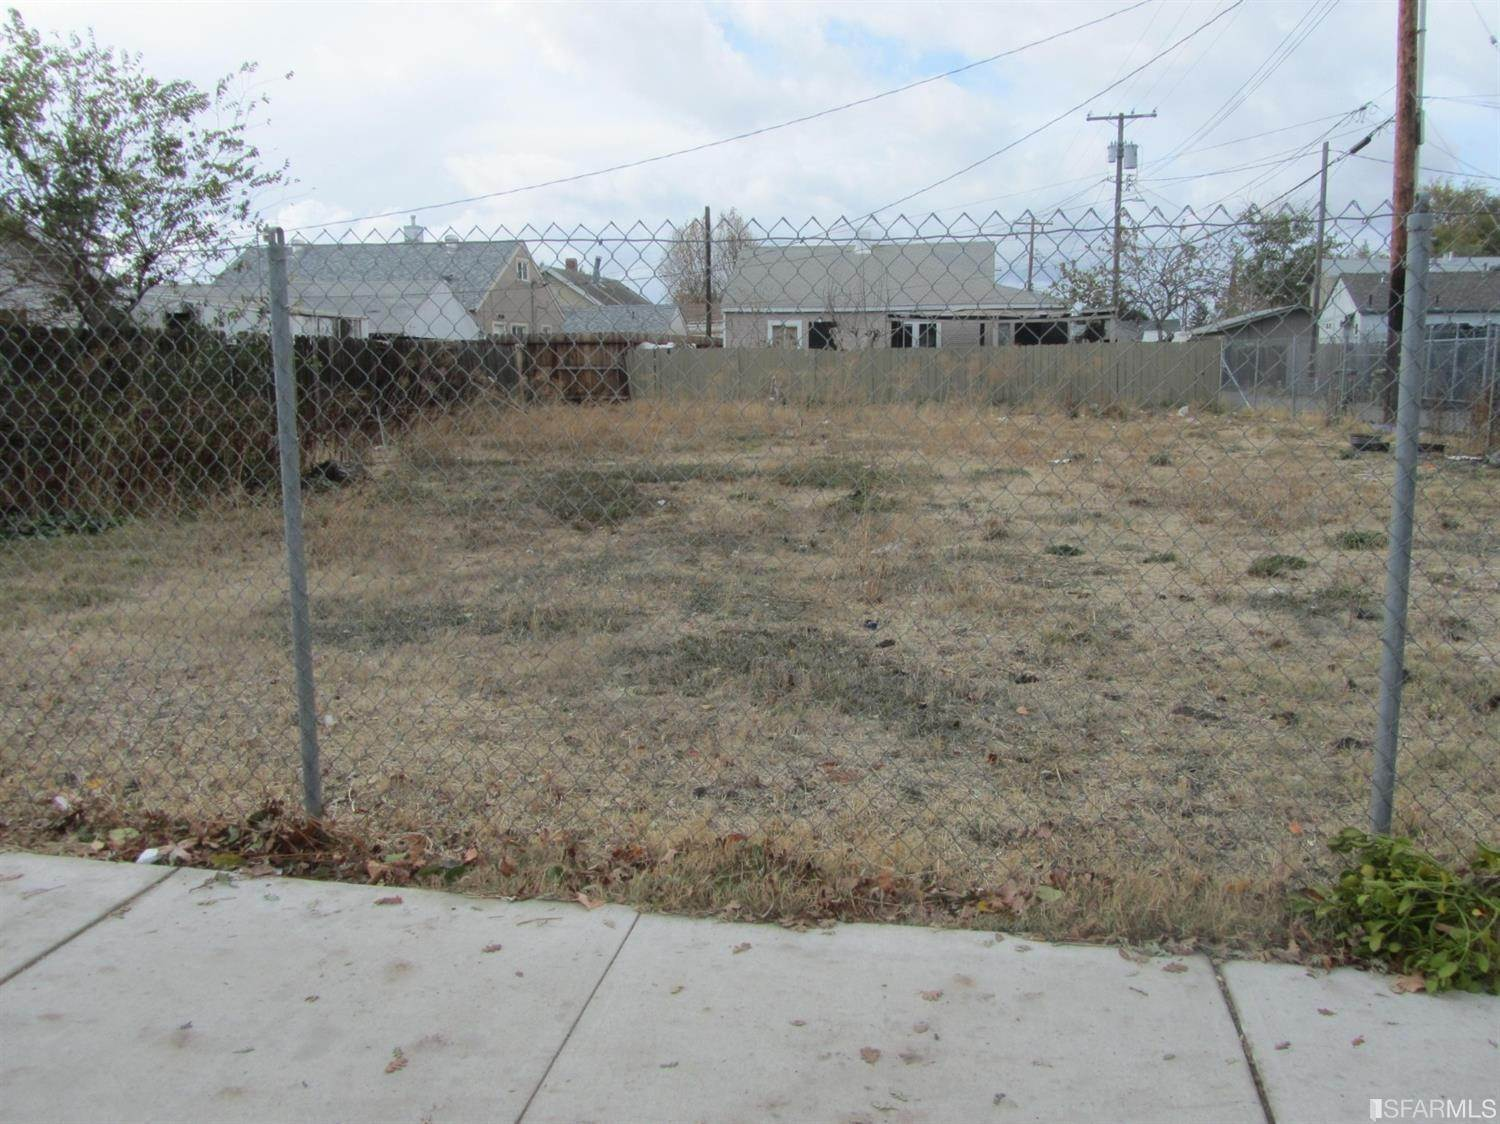 Residential Lot for Sale at 715 Cherokee Lane Lodi, California 95240 United States